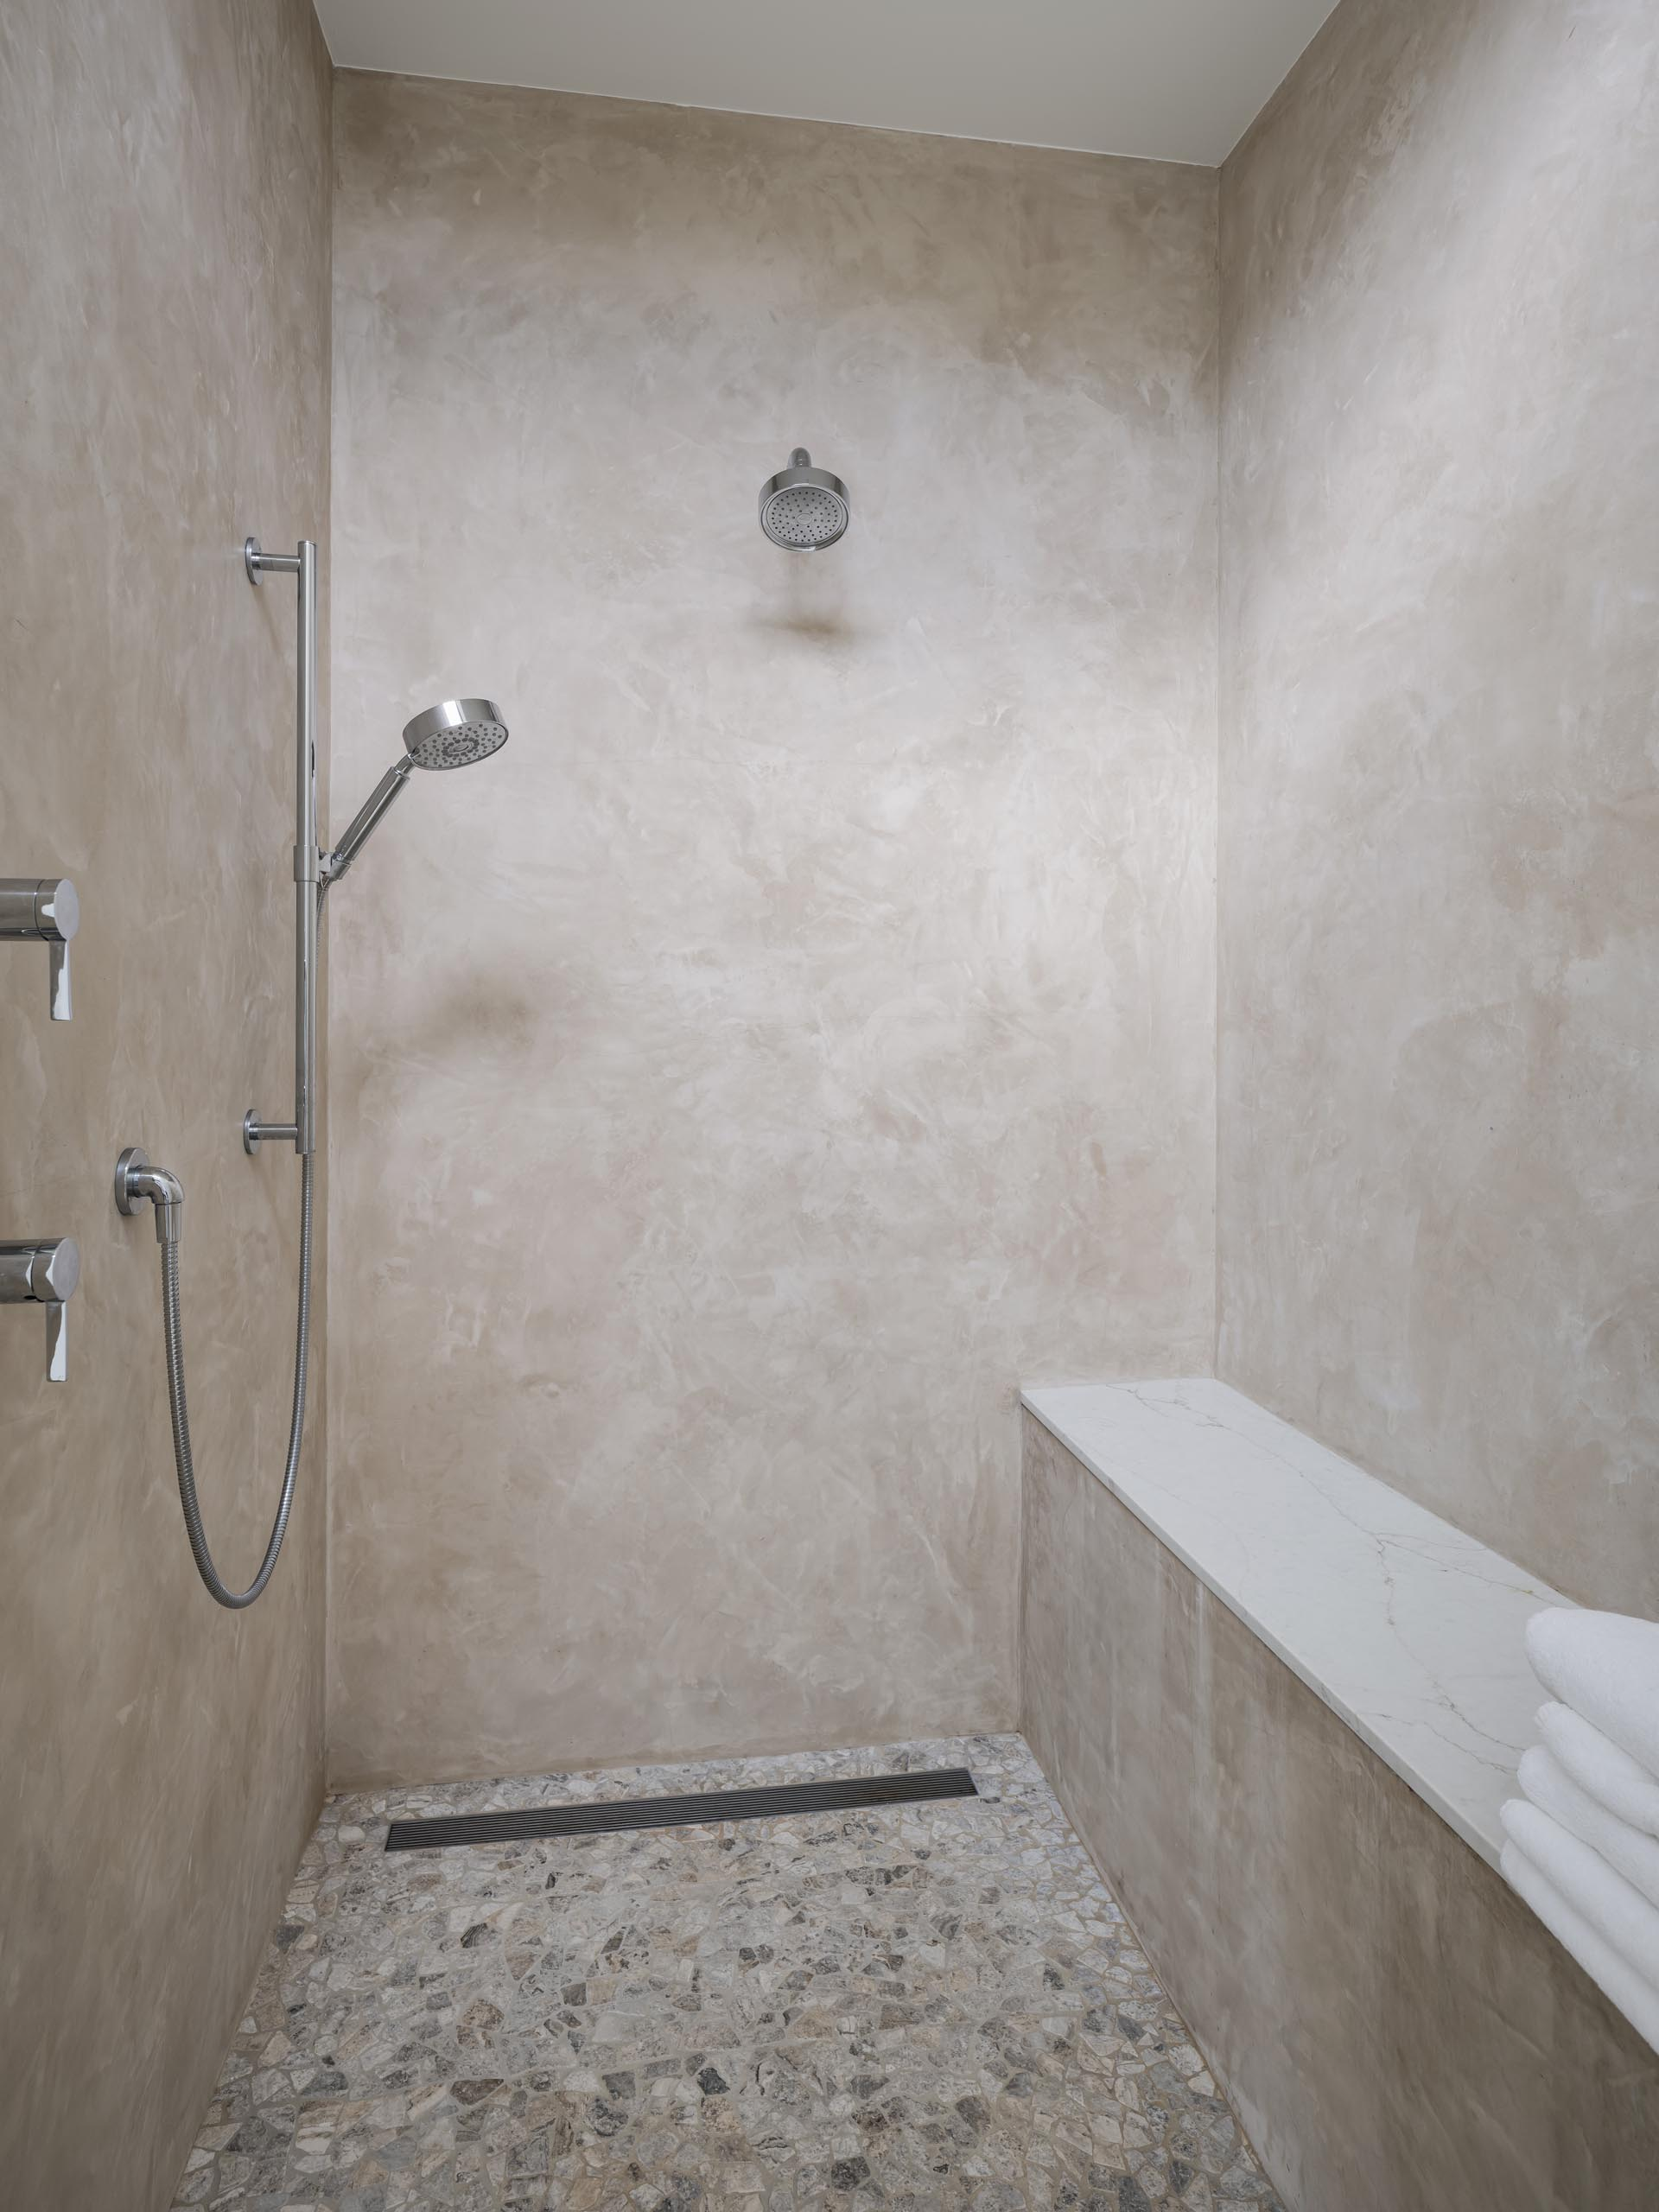 A contemporary shower with a built-in bench.